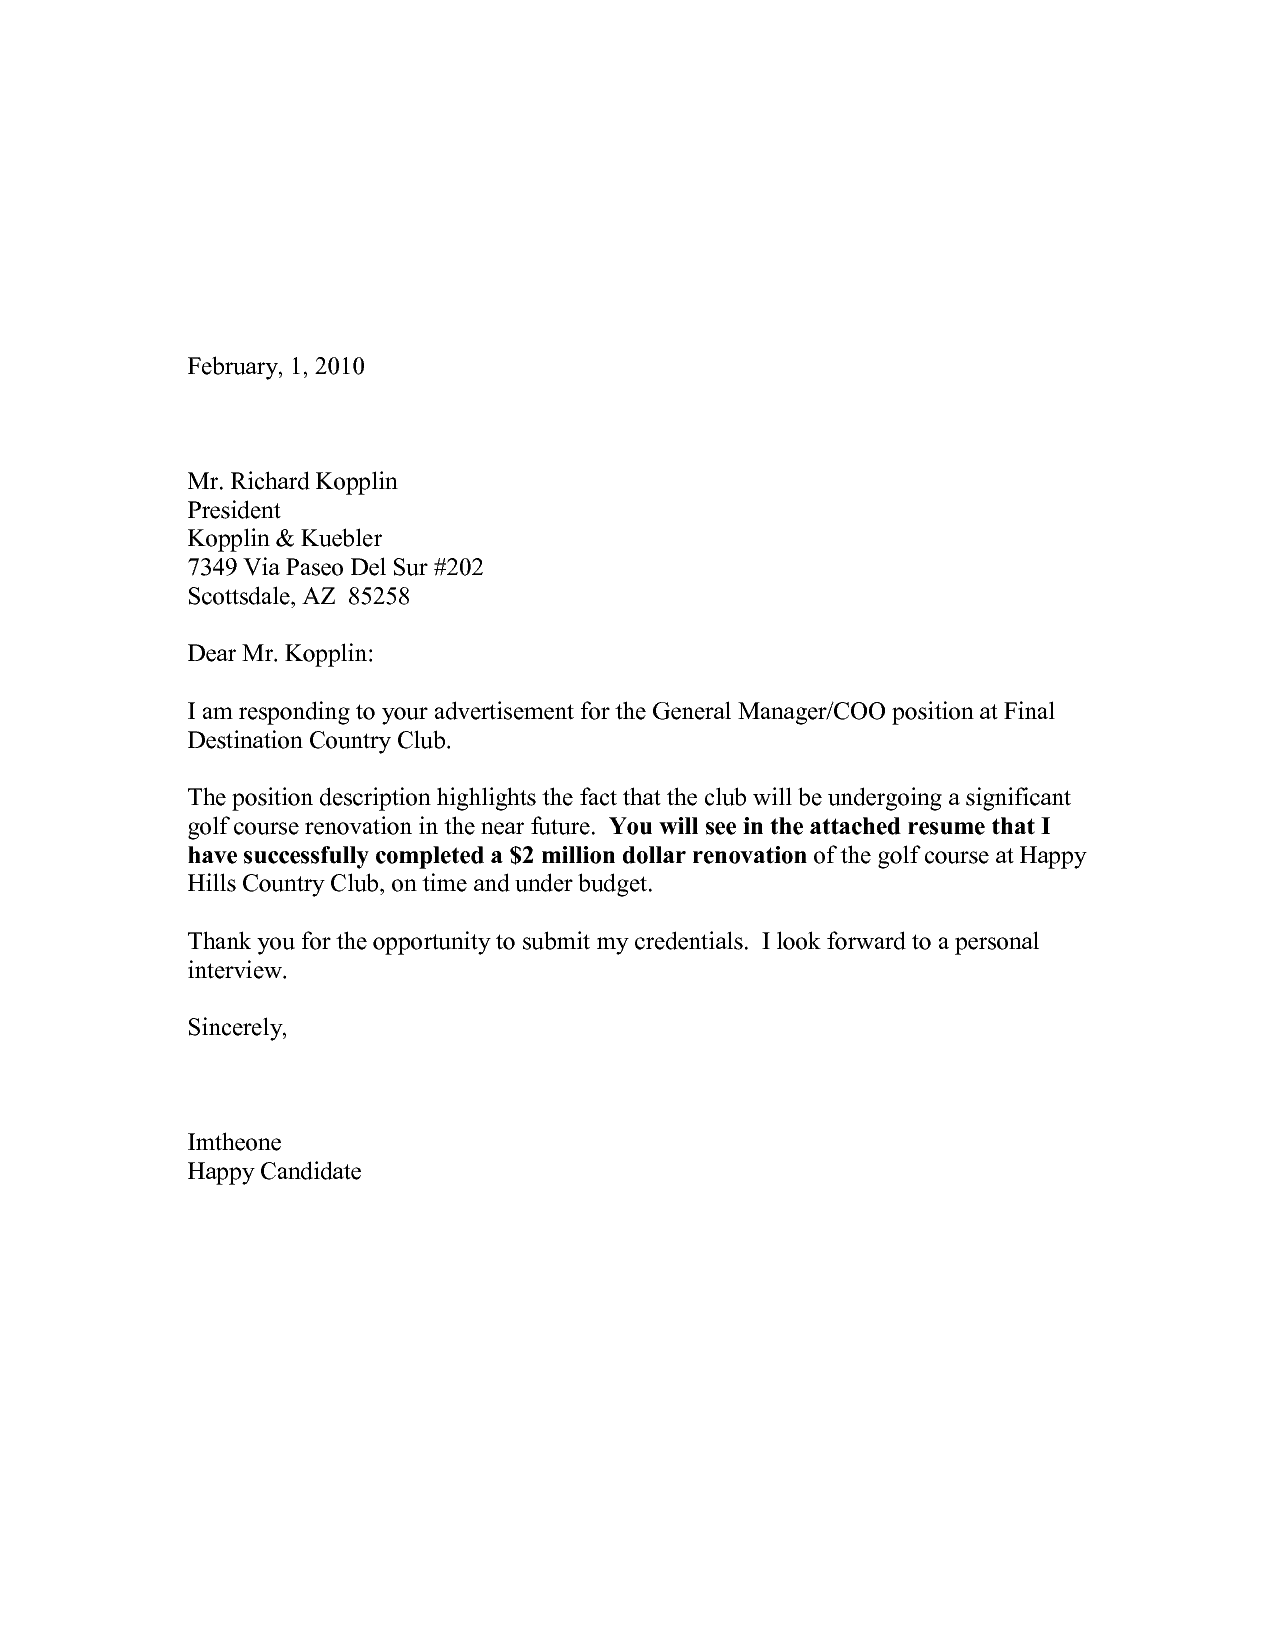 Cover Letter Samples For Job Application from i0.wp.com